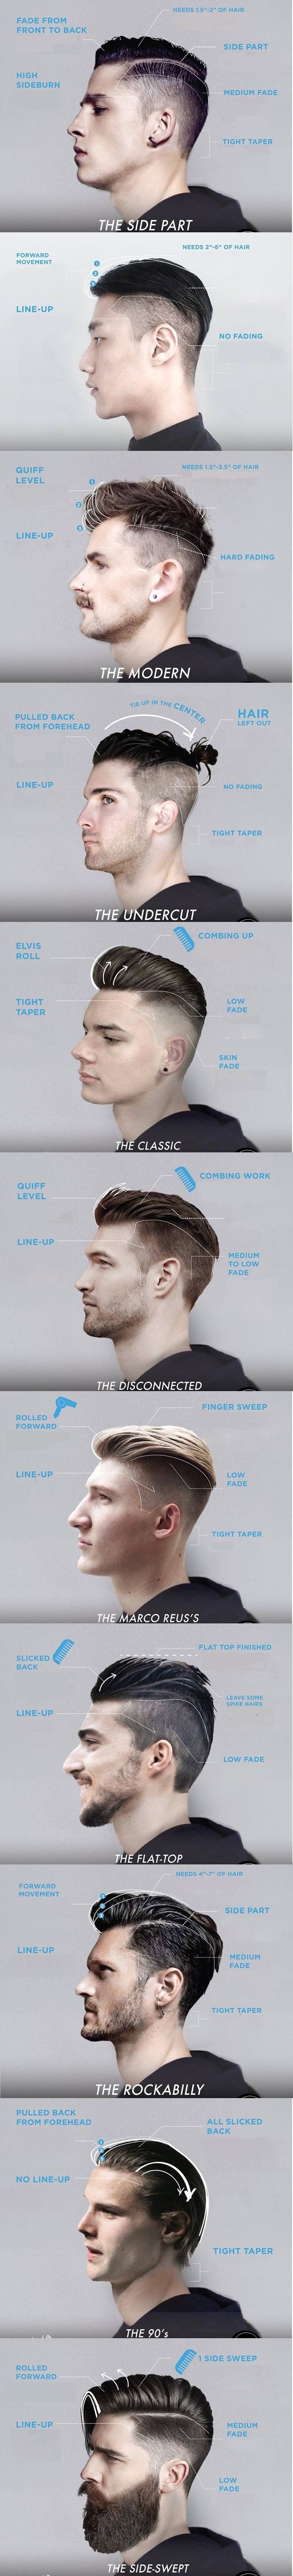 Source of this article http://www.lifehack.org/350299/trendy-hair-styling-for-men-with-undercut-2016-infographic?ref=ppt9